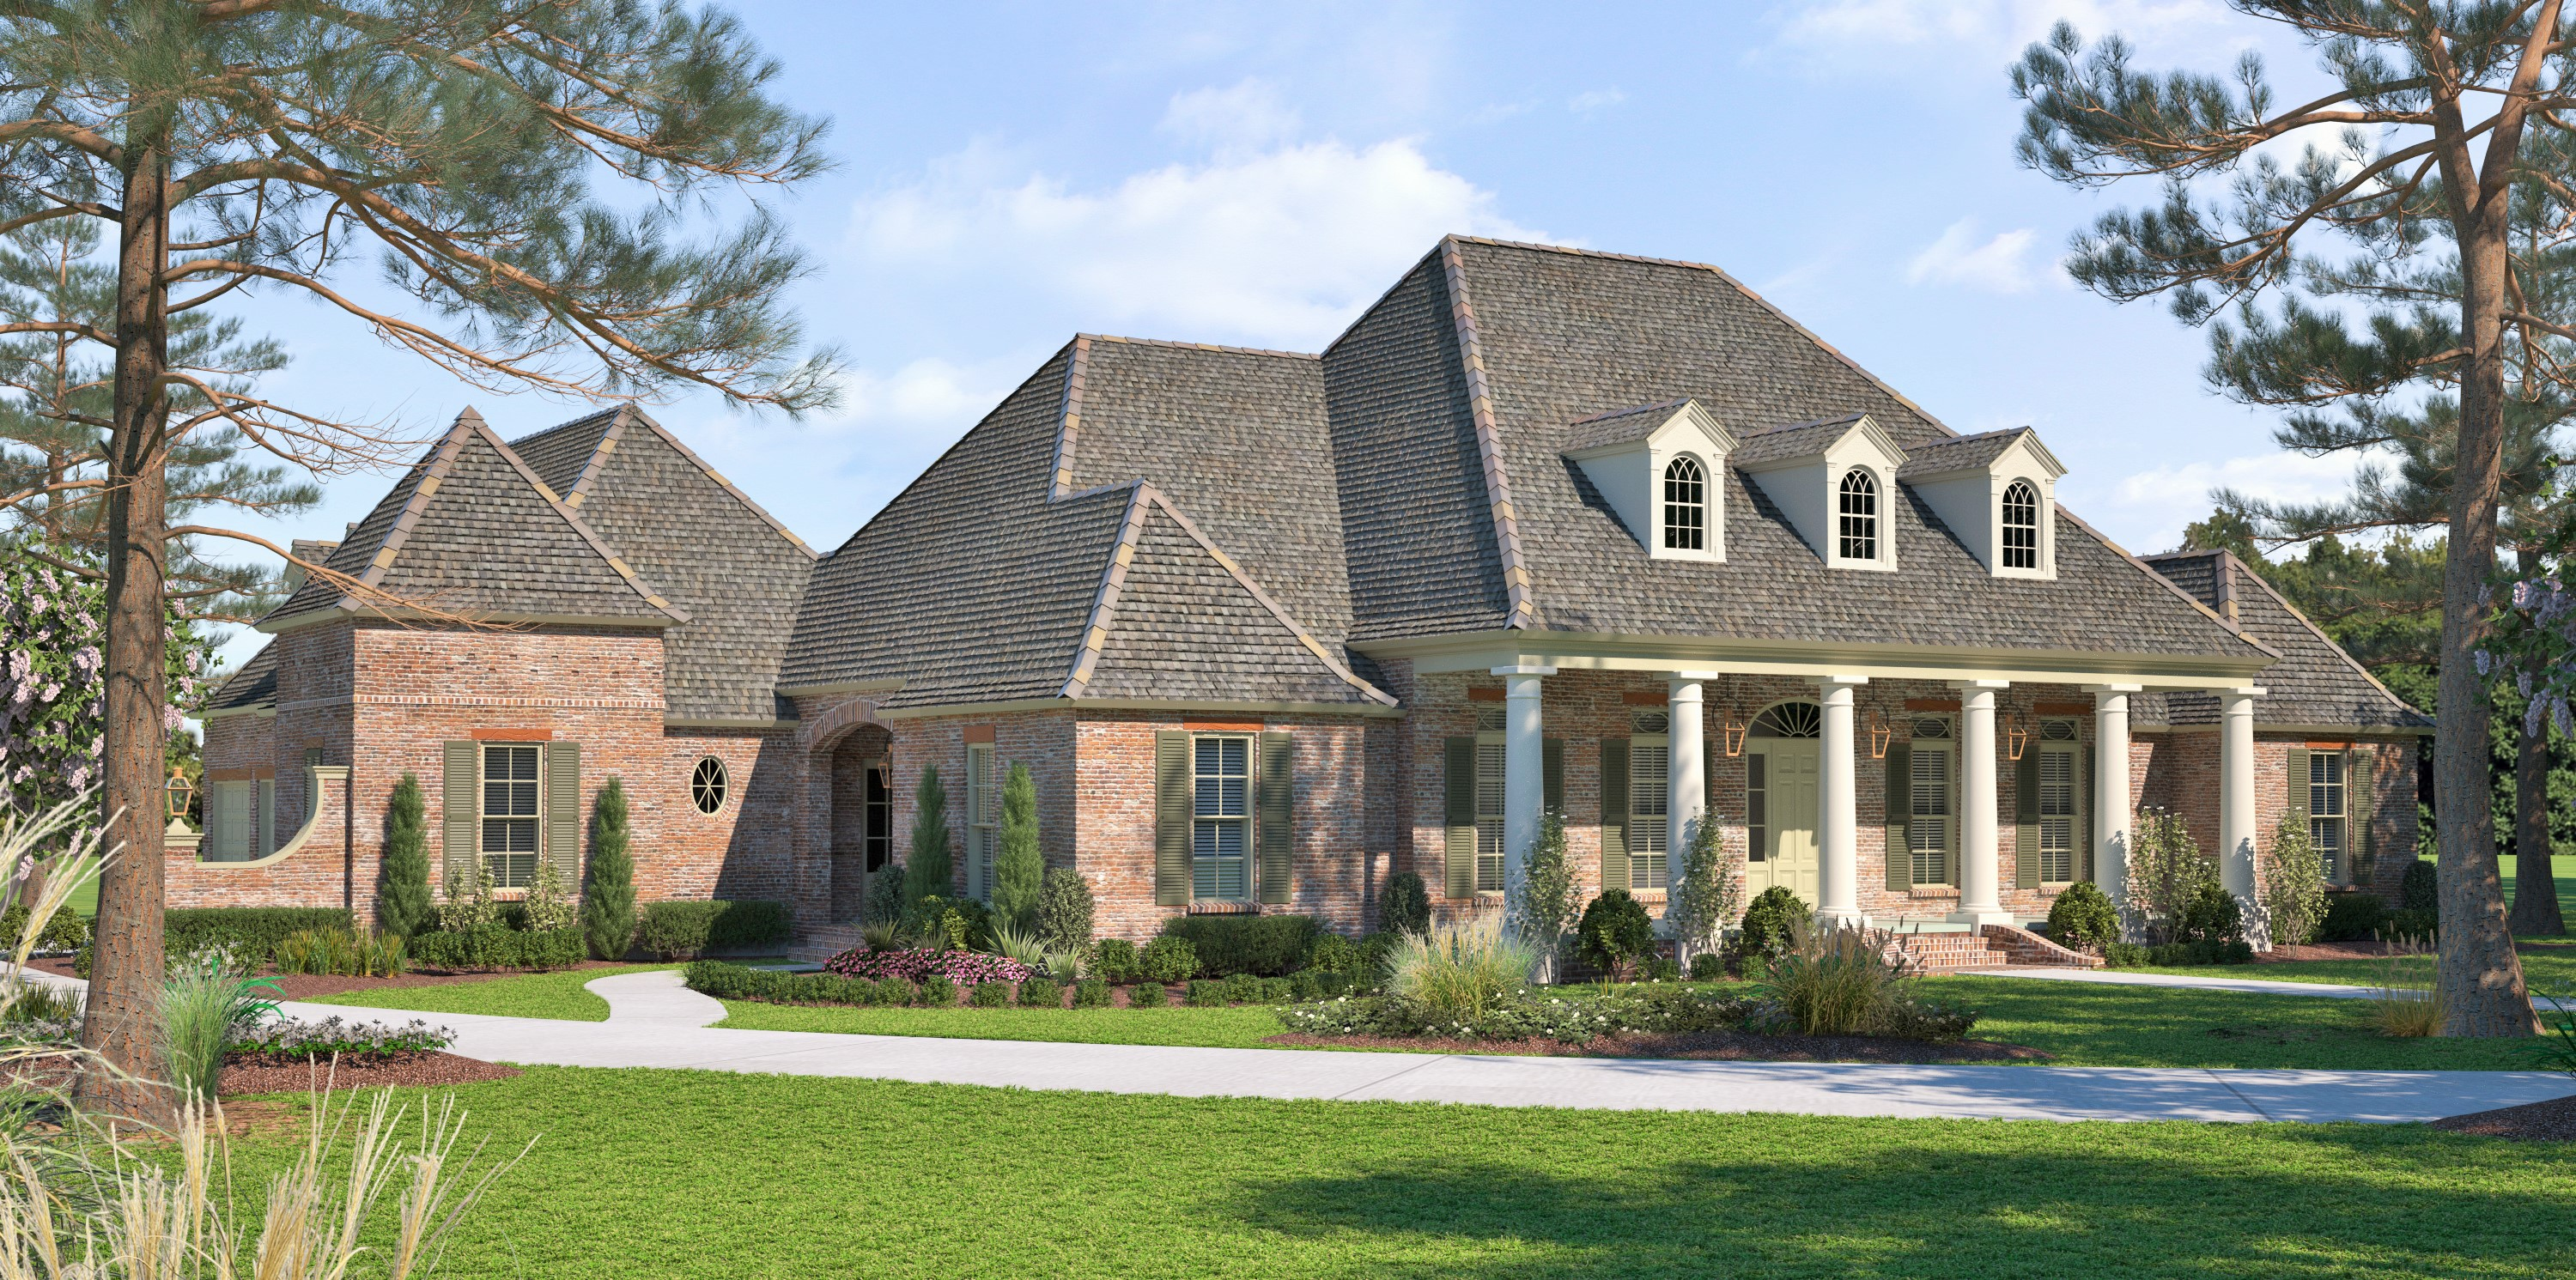 Some Of Our Featured House Plans